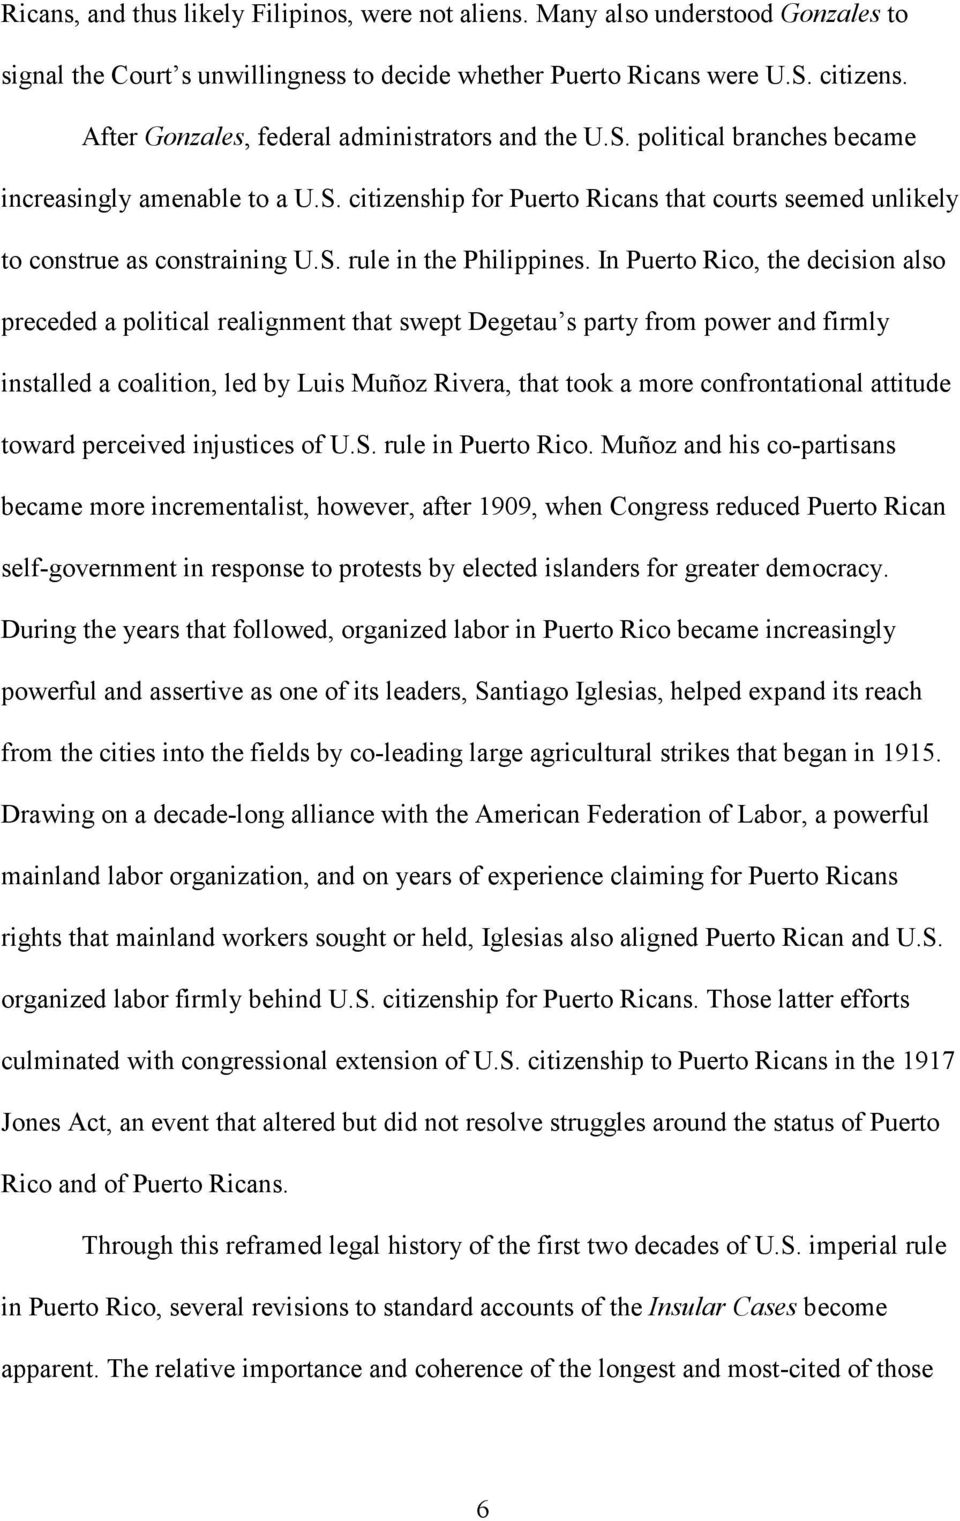 In Puerto Rico, the decision also preceded a political realignment that swept Degetau s party from power and firmly installed a coalition, led by Luis Muñoz Rivera, that took a more confrontational